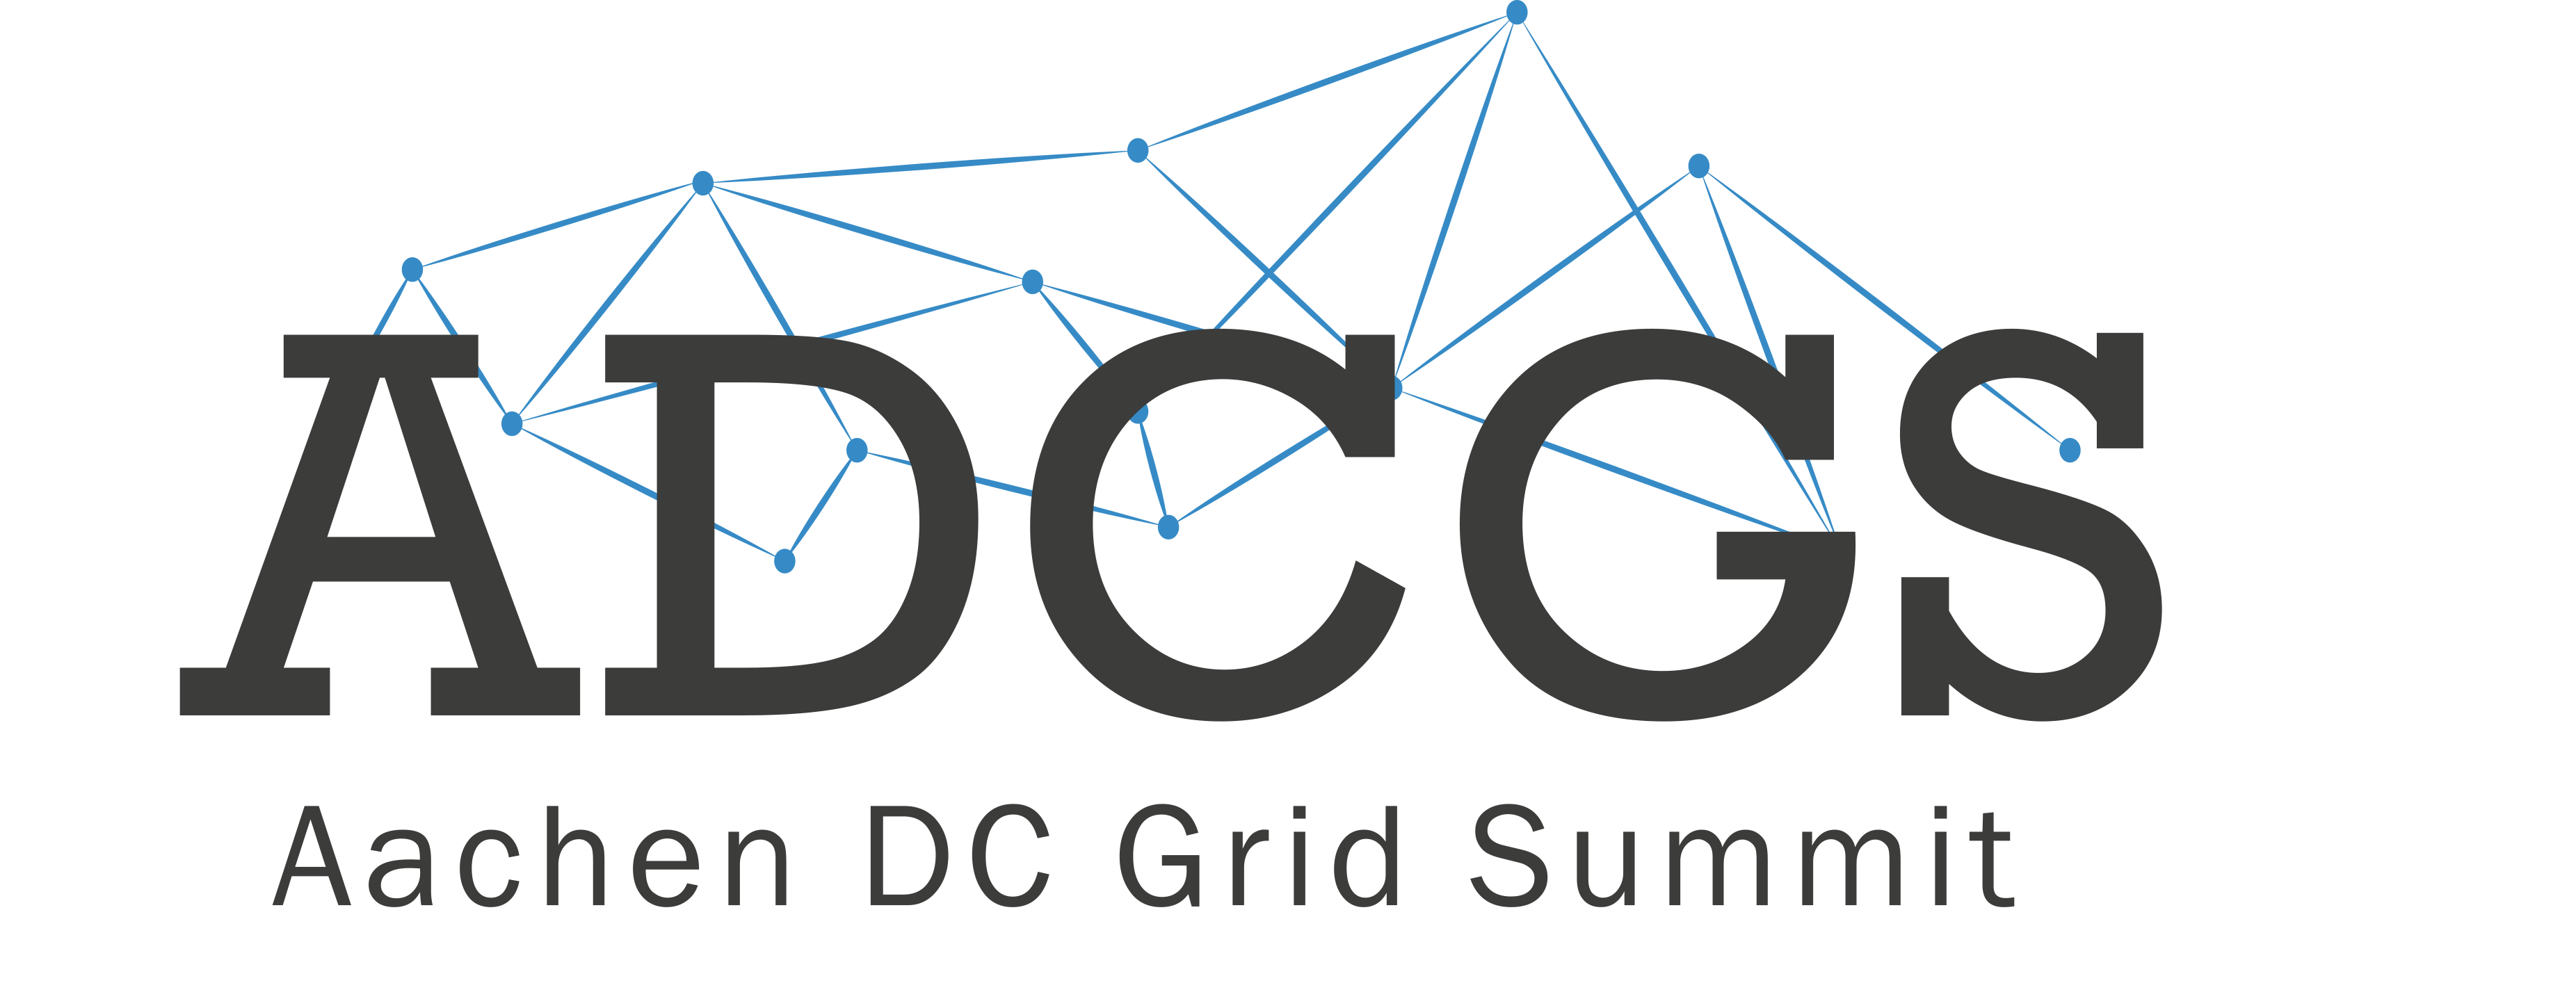 Aachen DC Grid Summit Sticky Logo Retina